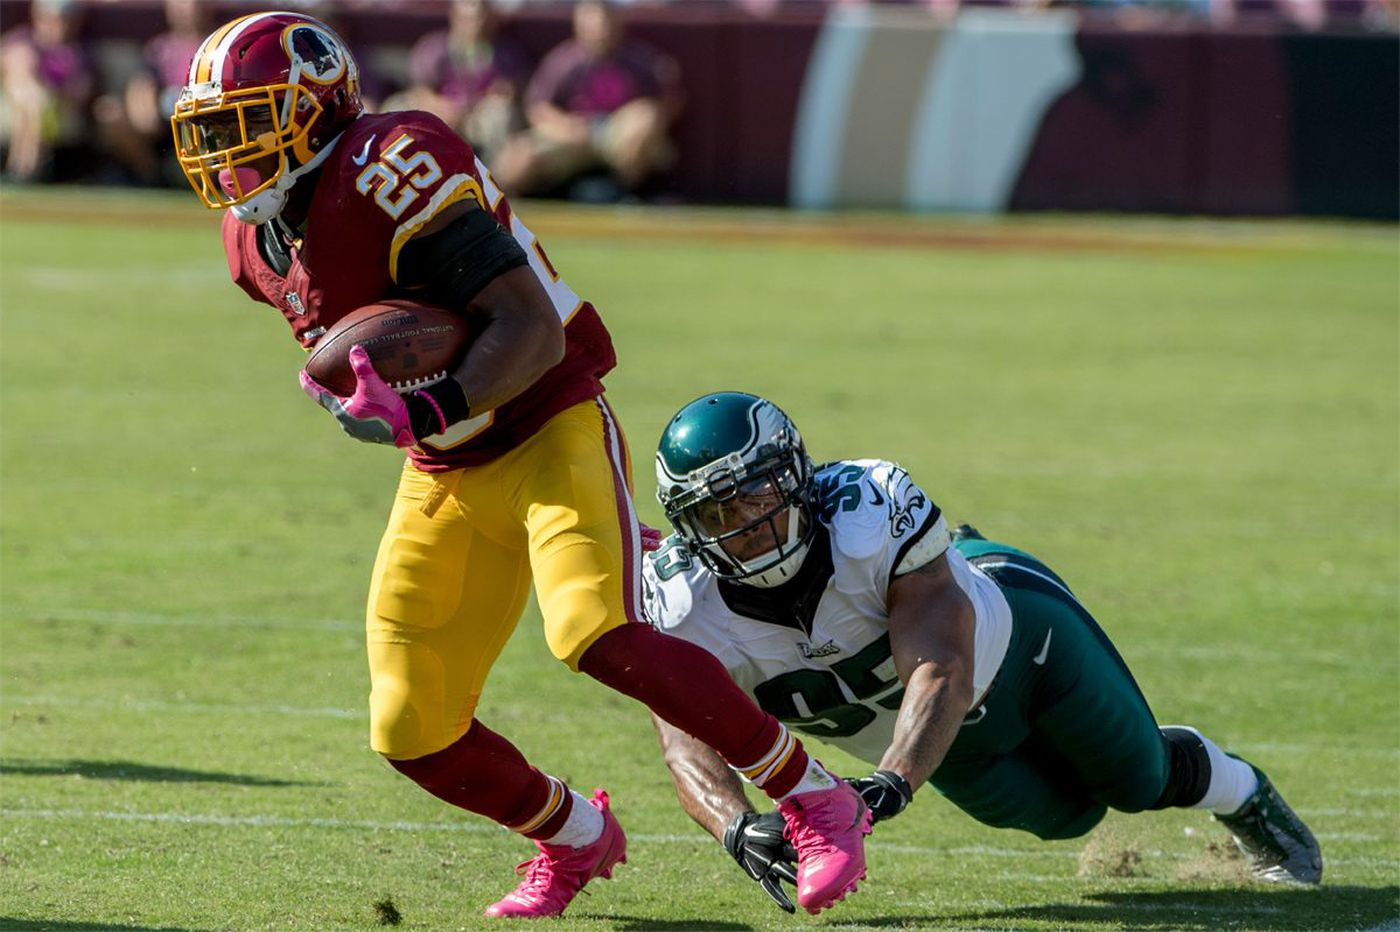 Redskins' running back won't let his family come to Philly because of Eagles fans